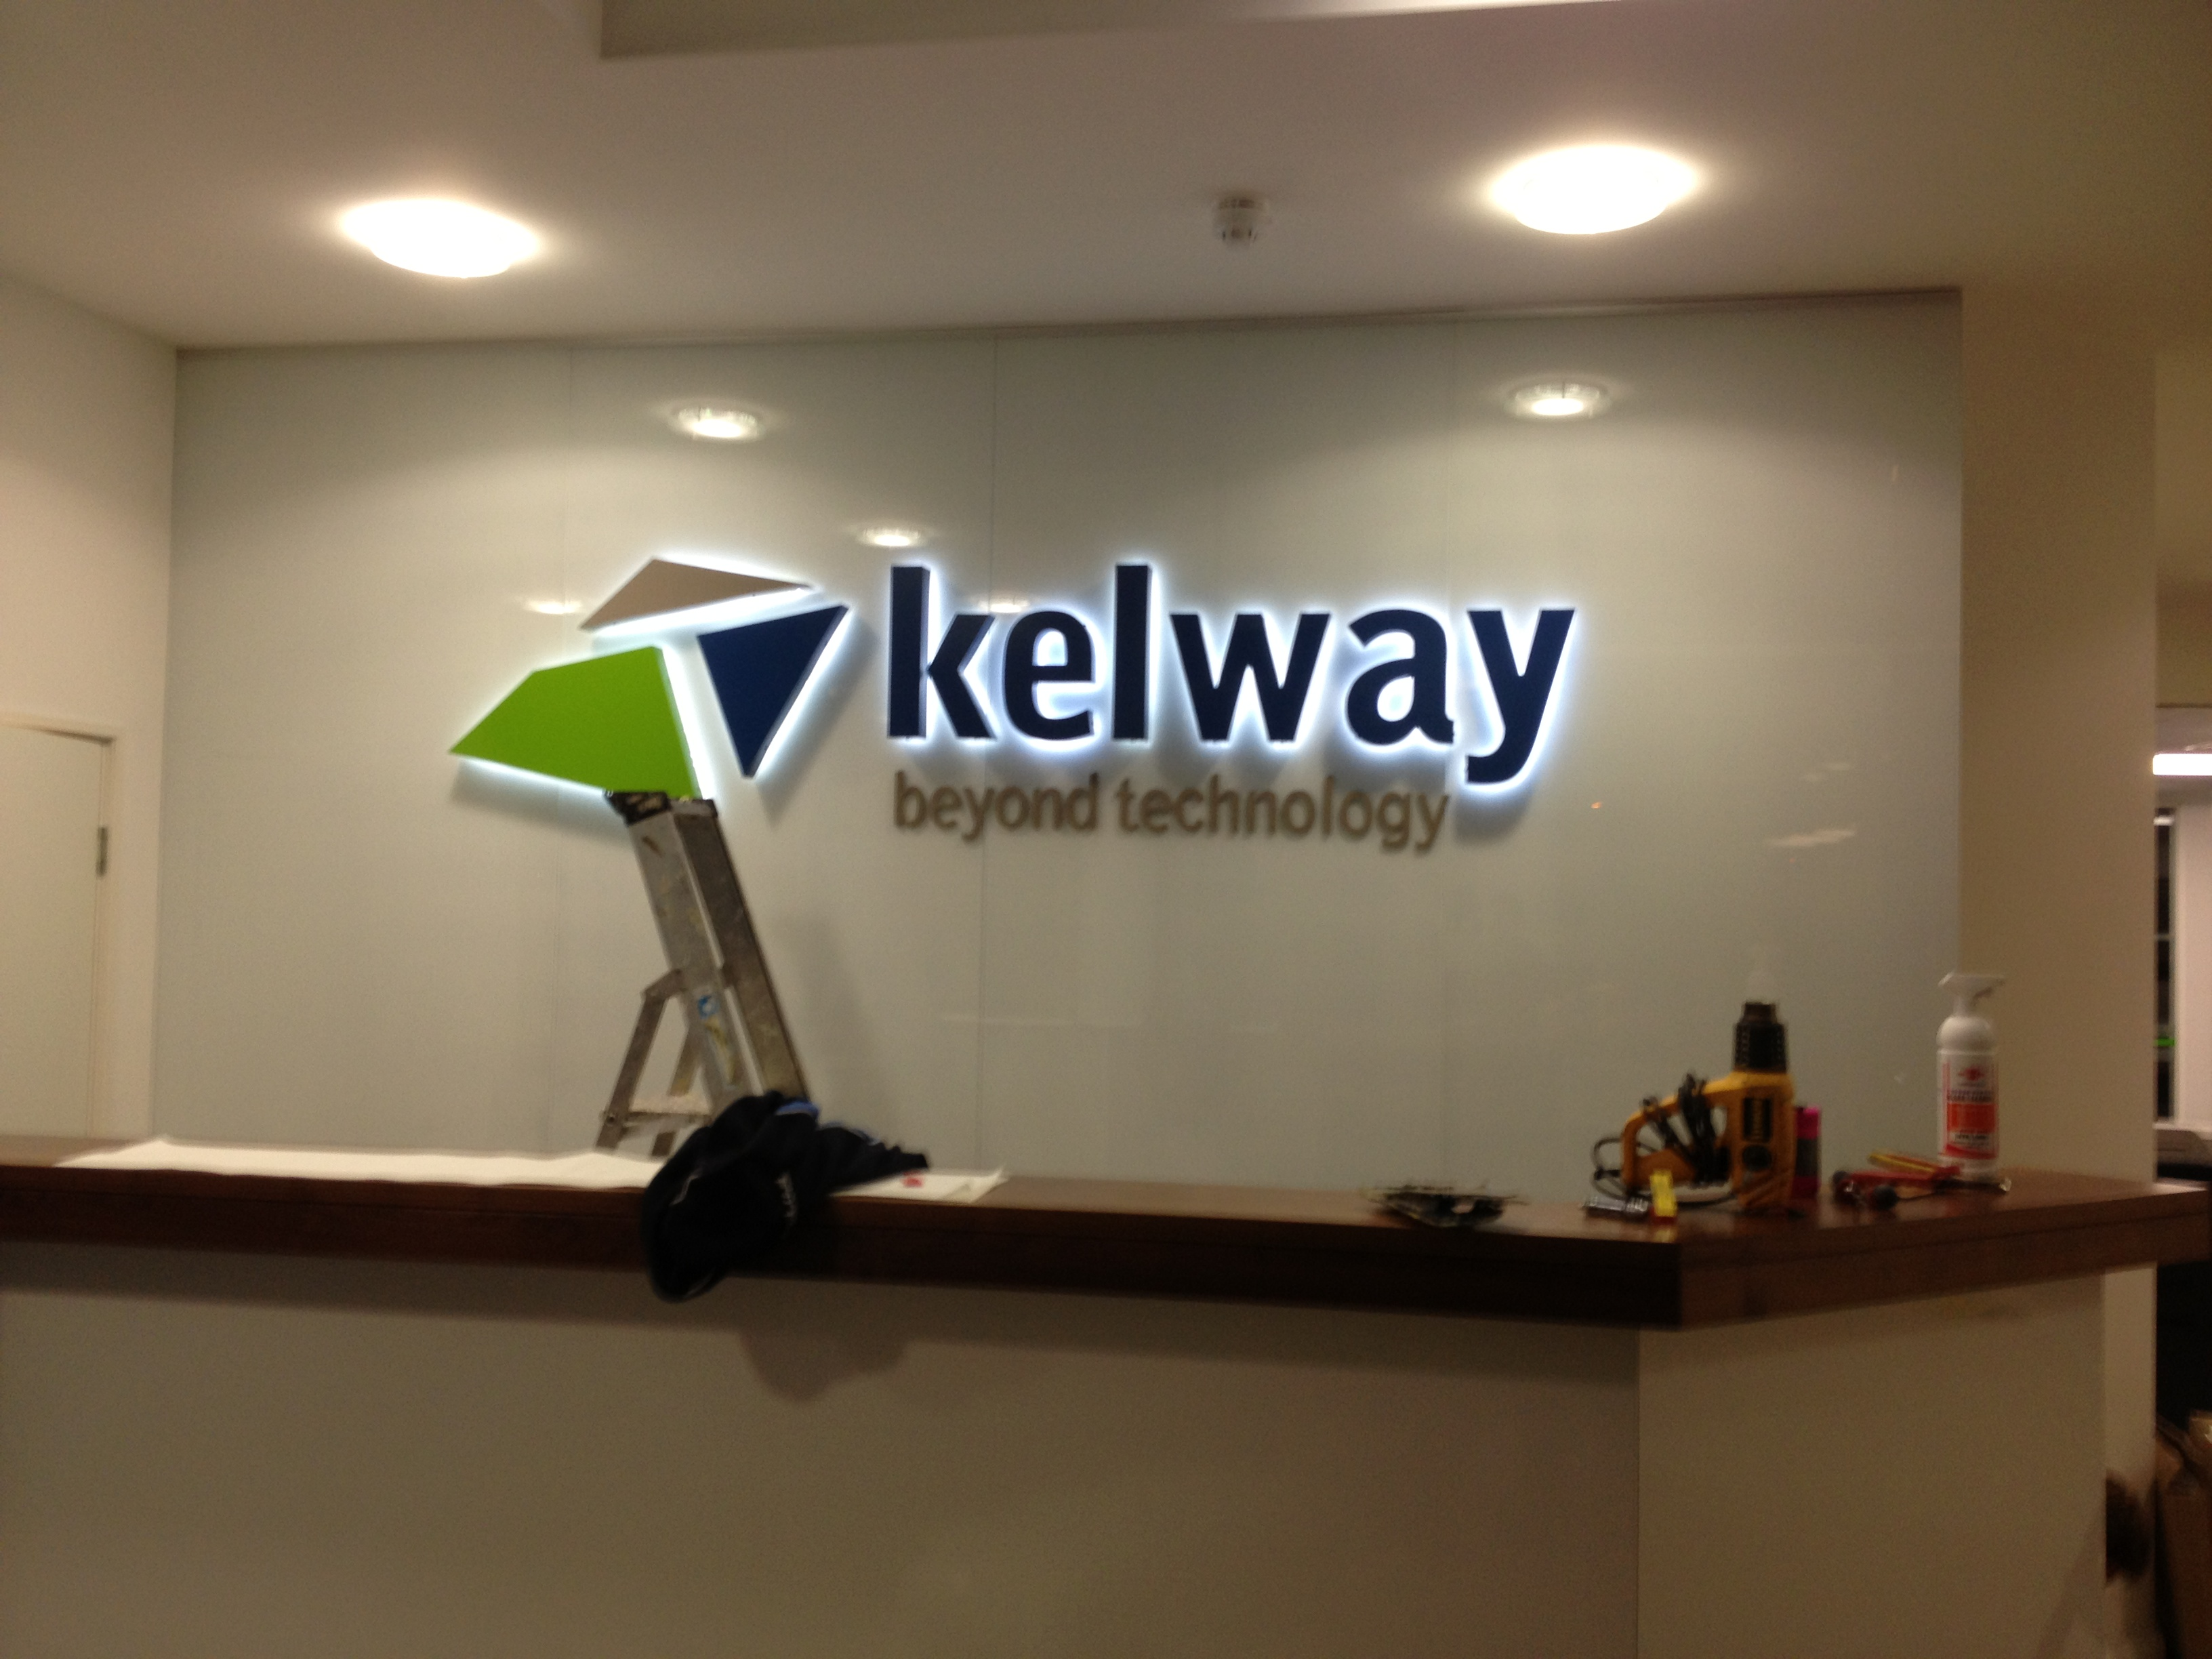 kelway corporate sign